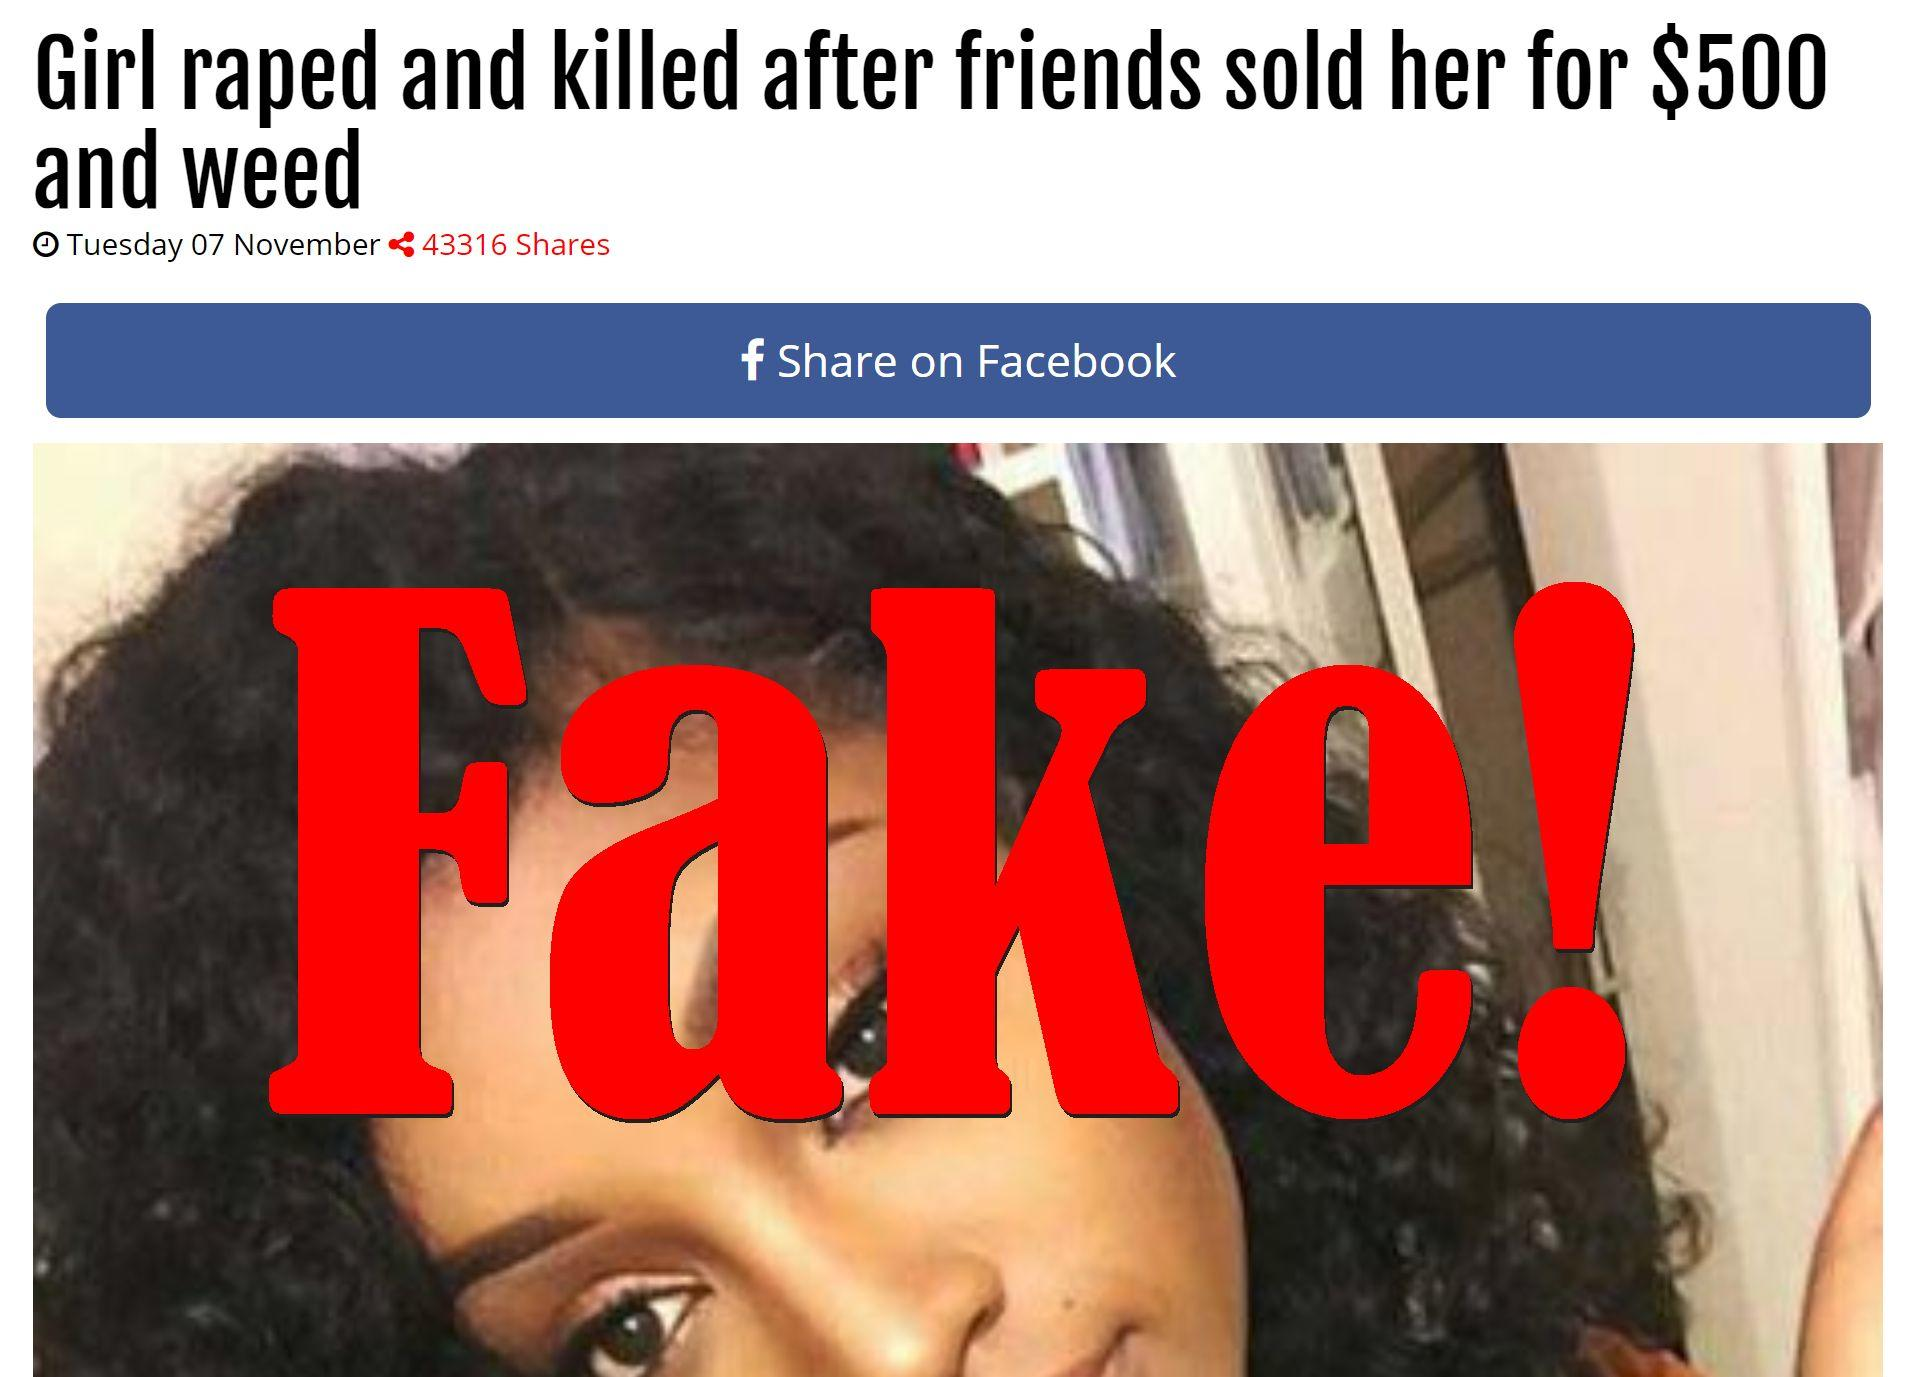 Fake News: Girl NOT Sold For $500 And Weed, NOT Raped And Killed